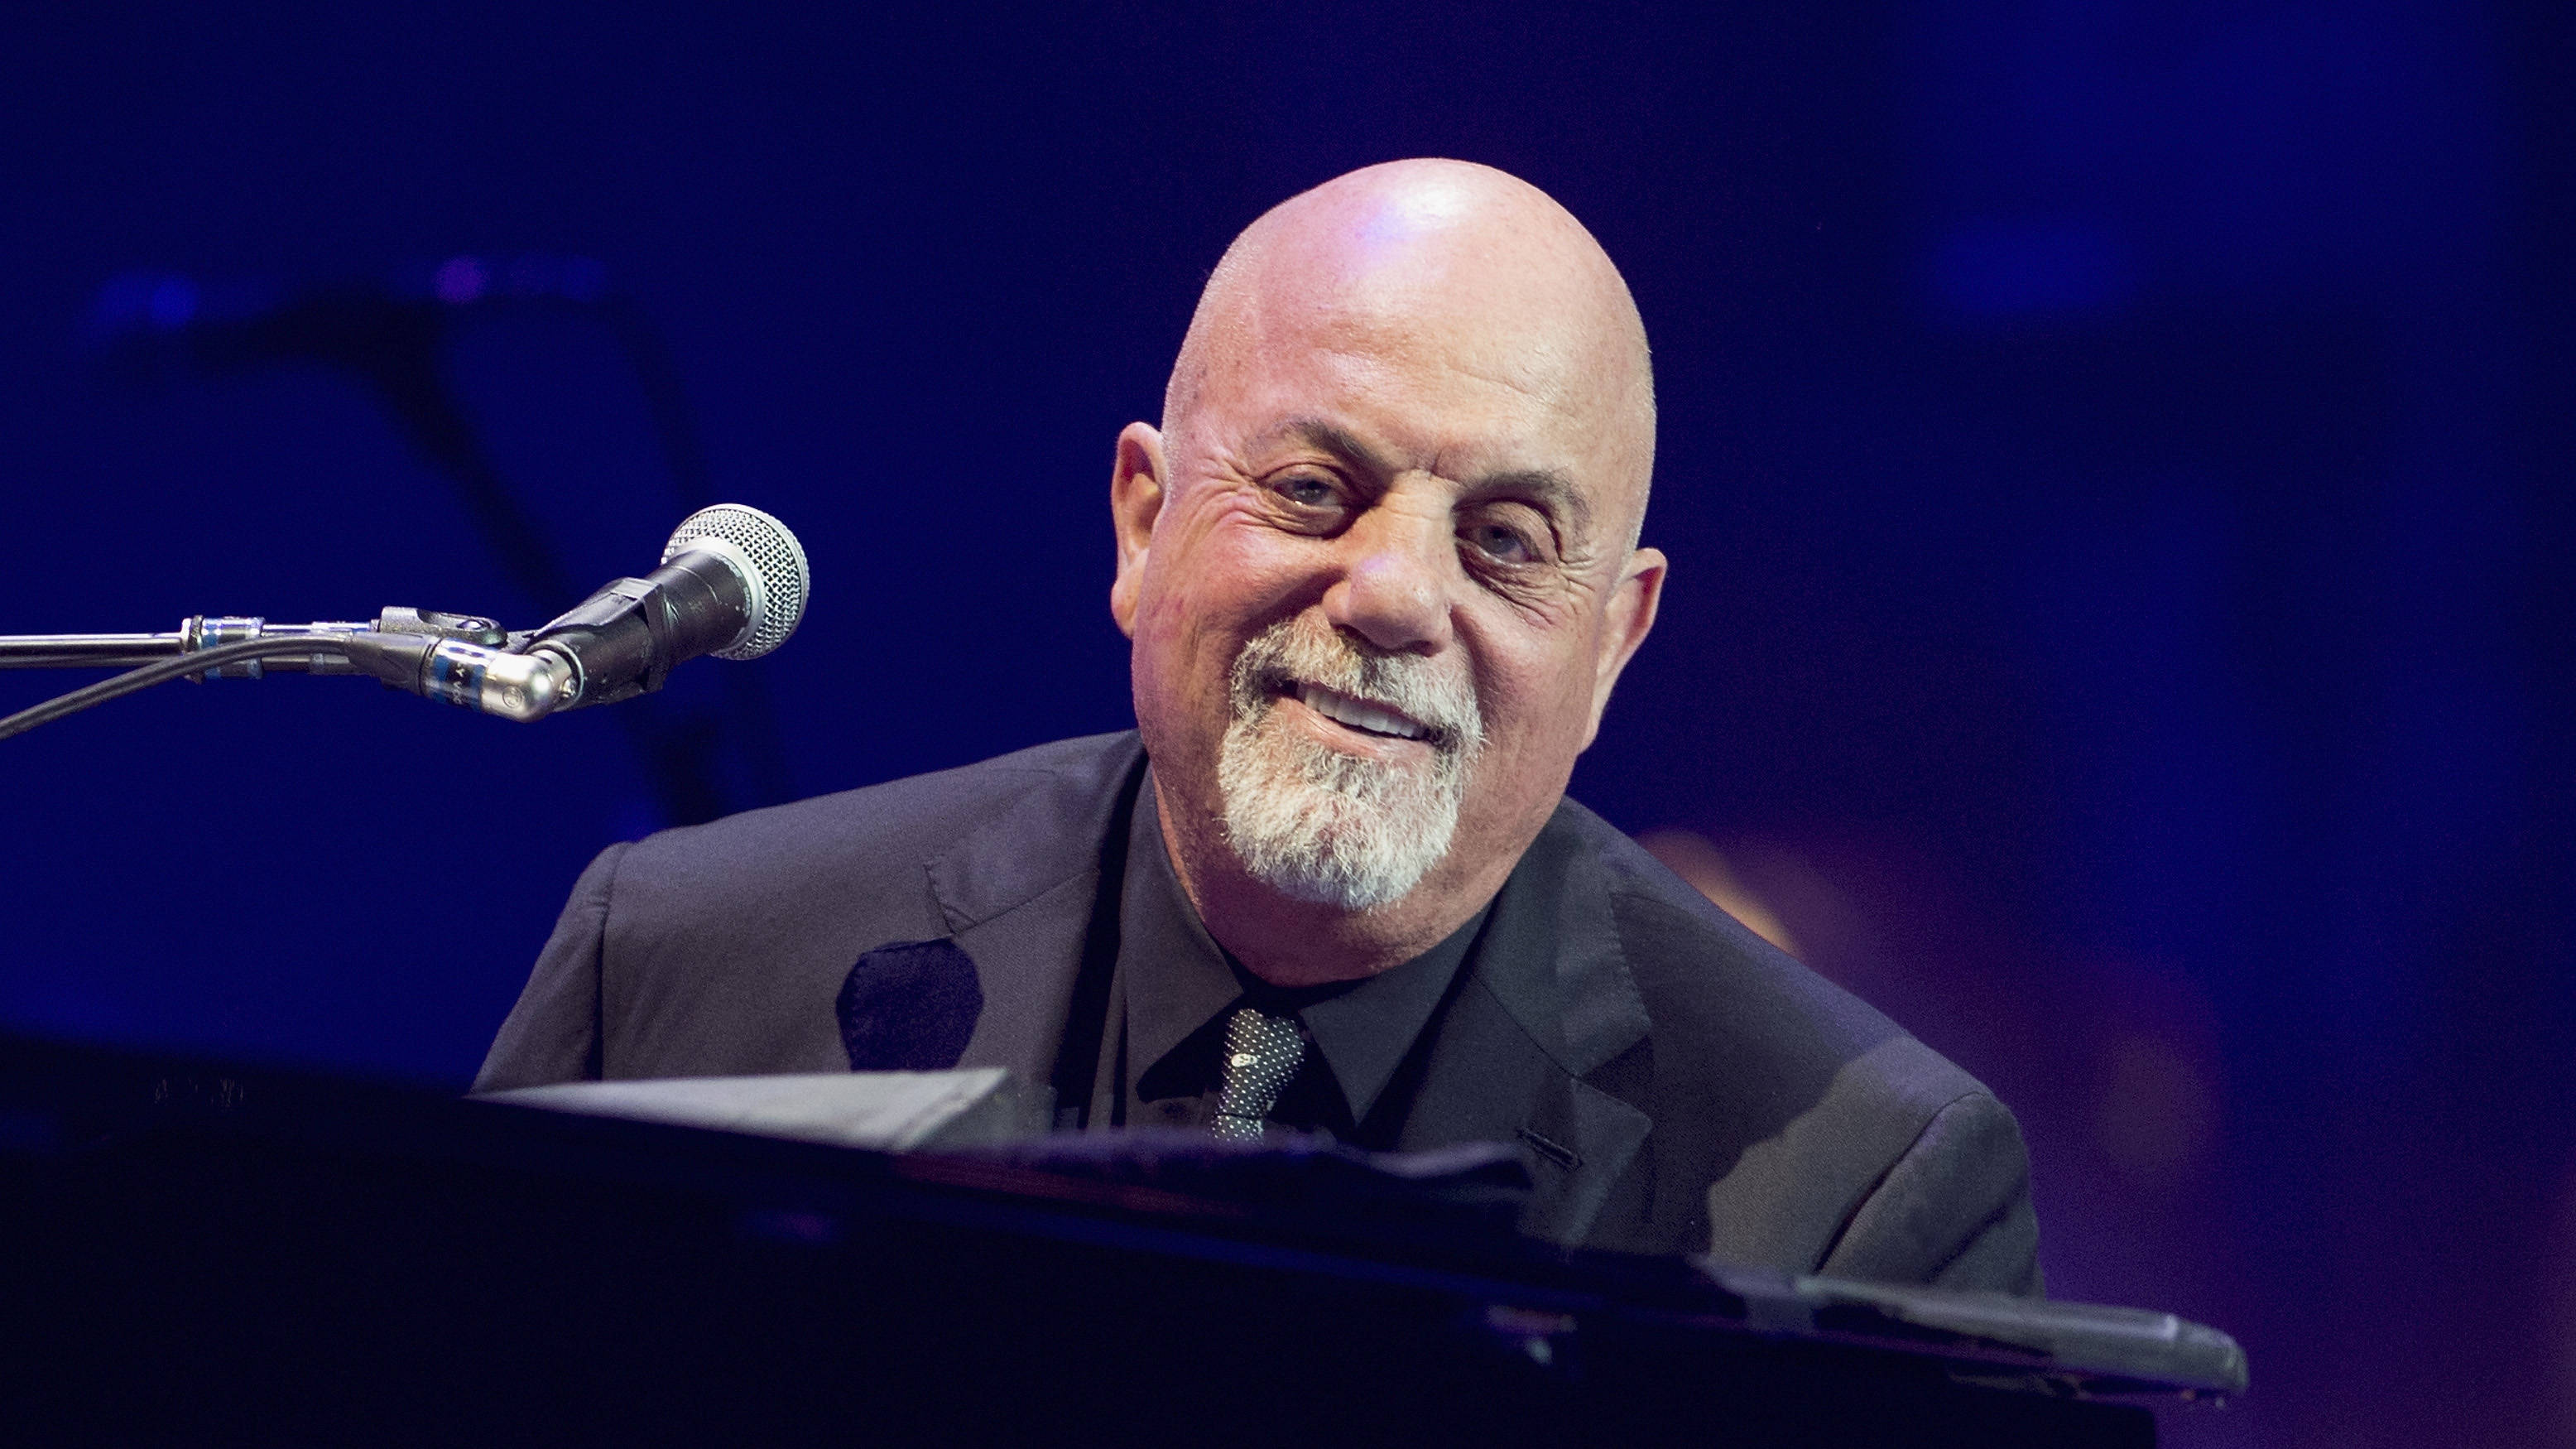 Billy Joel best songs: 10 of his greatest tracks, ranked - Smooth